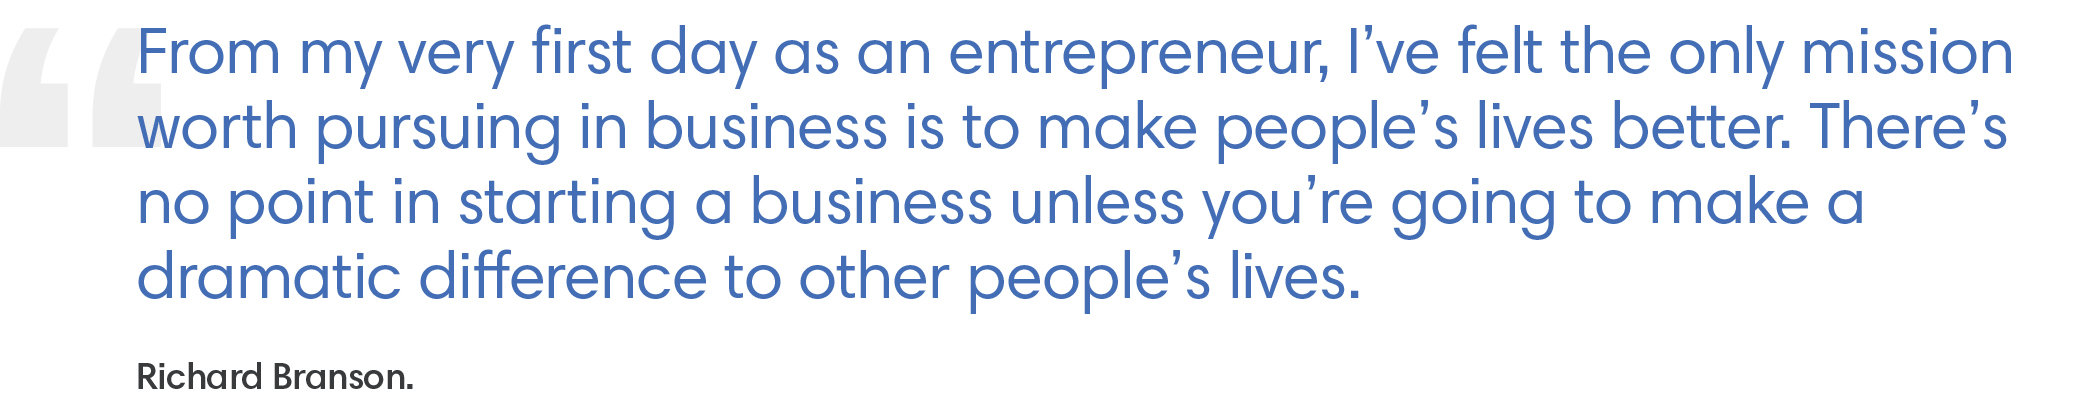 "A quote from Richard Branson: ""From my very first day as an entrepreneur, I've felt the only mission worth pursuing in business is to make people's lives better. There's no point in starting a business unless you're going to make a dramatic difference to other people's lives."""